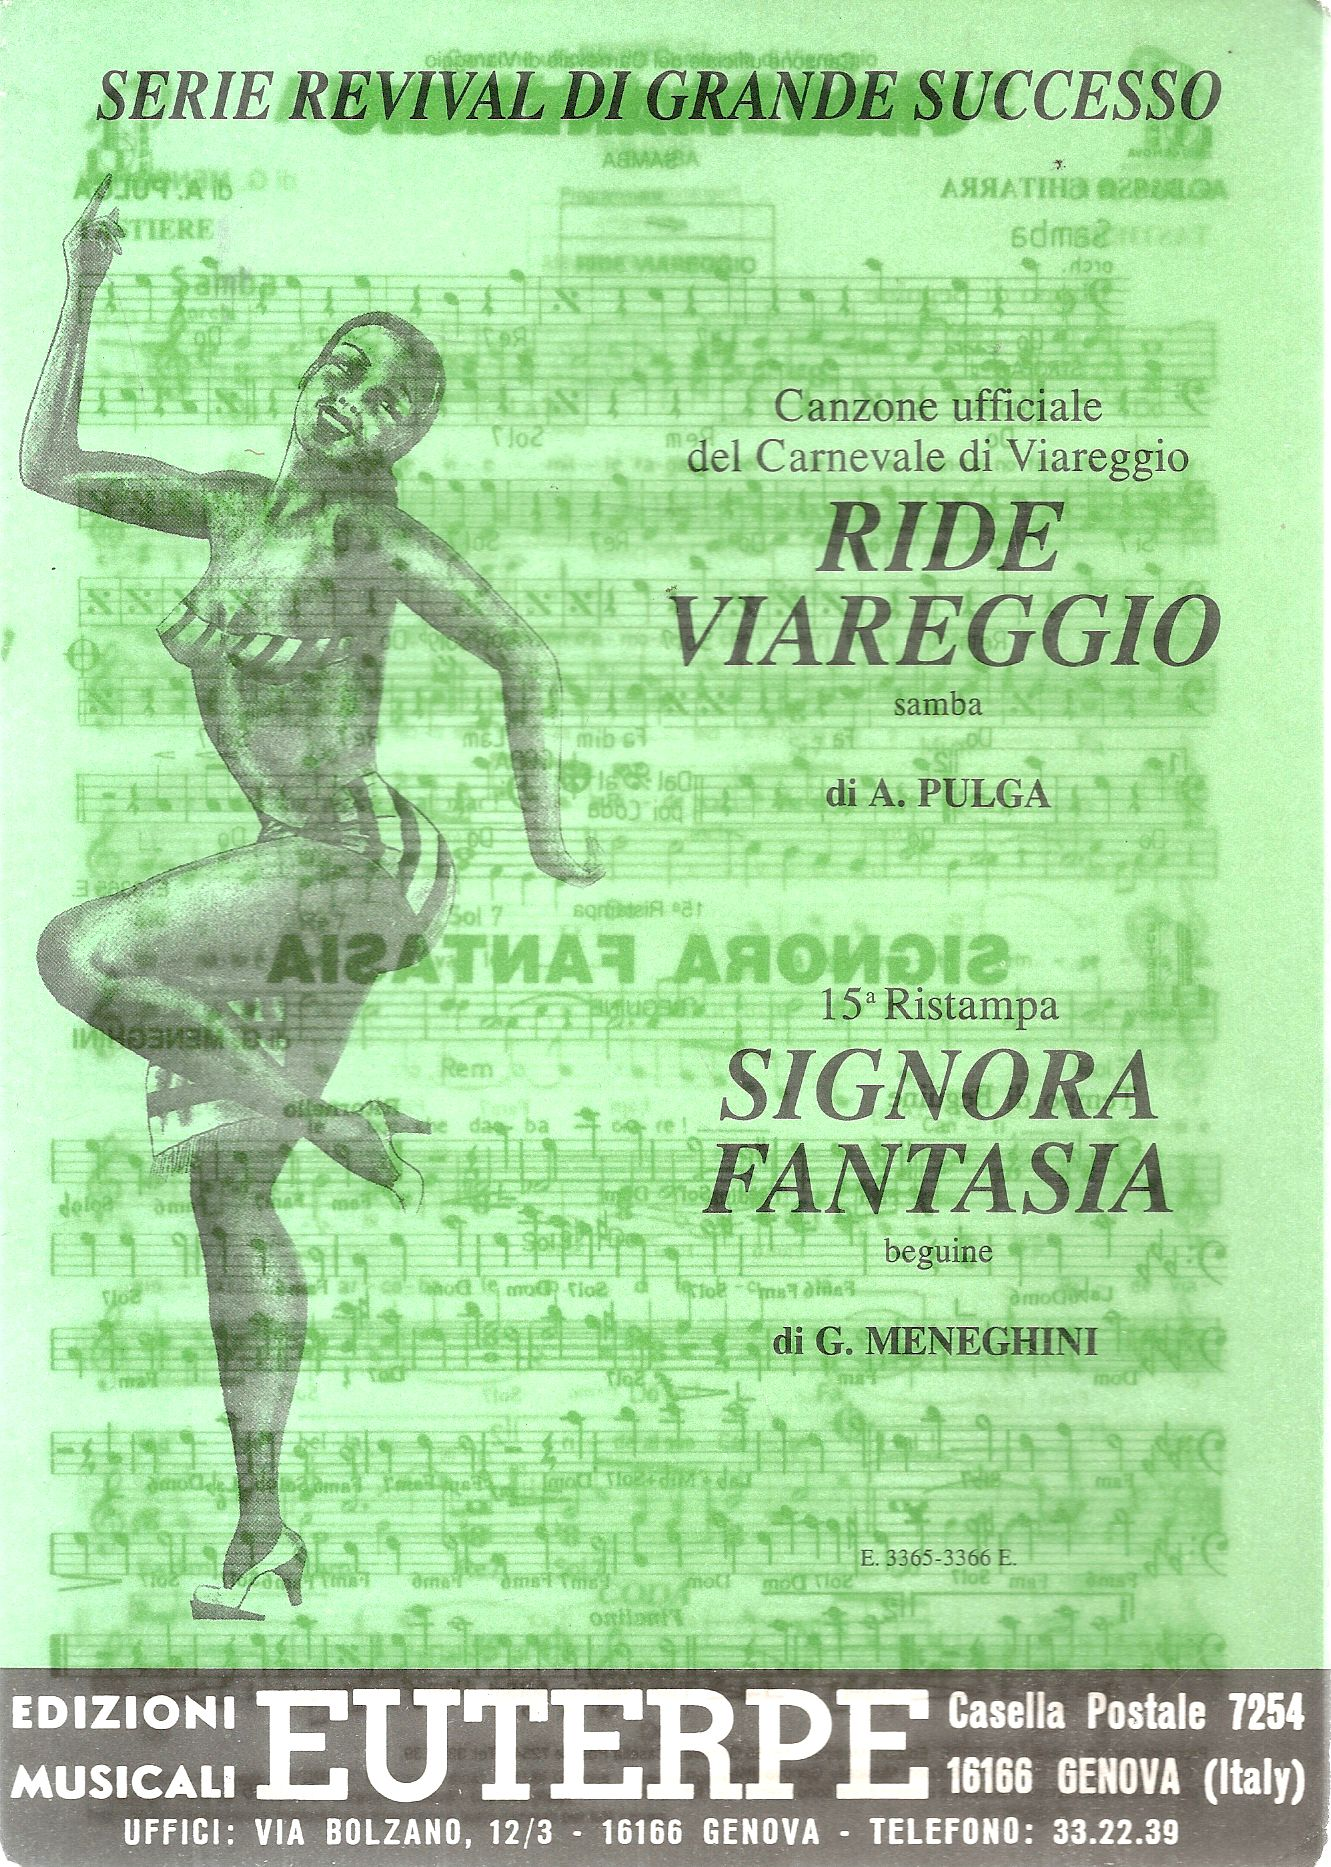 RIDE VIAREGGIO - SIGNORA FANTASIA - SPARTITO-SHEET MUSIC